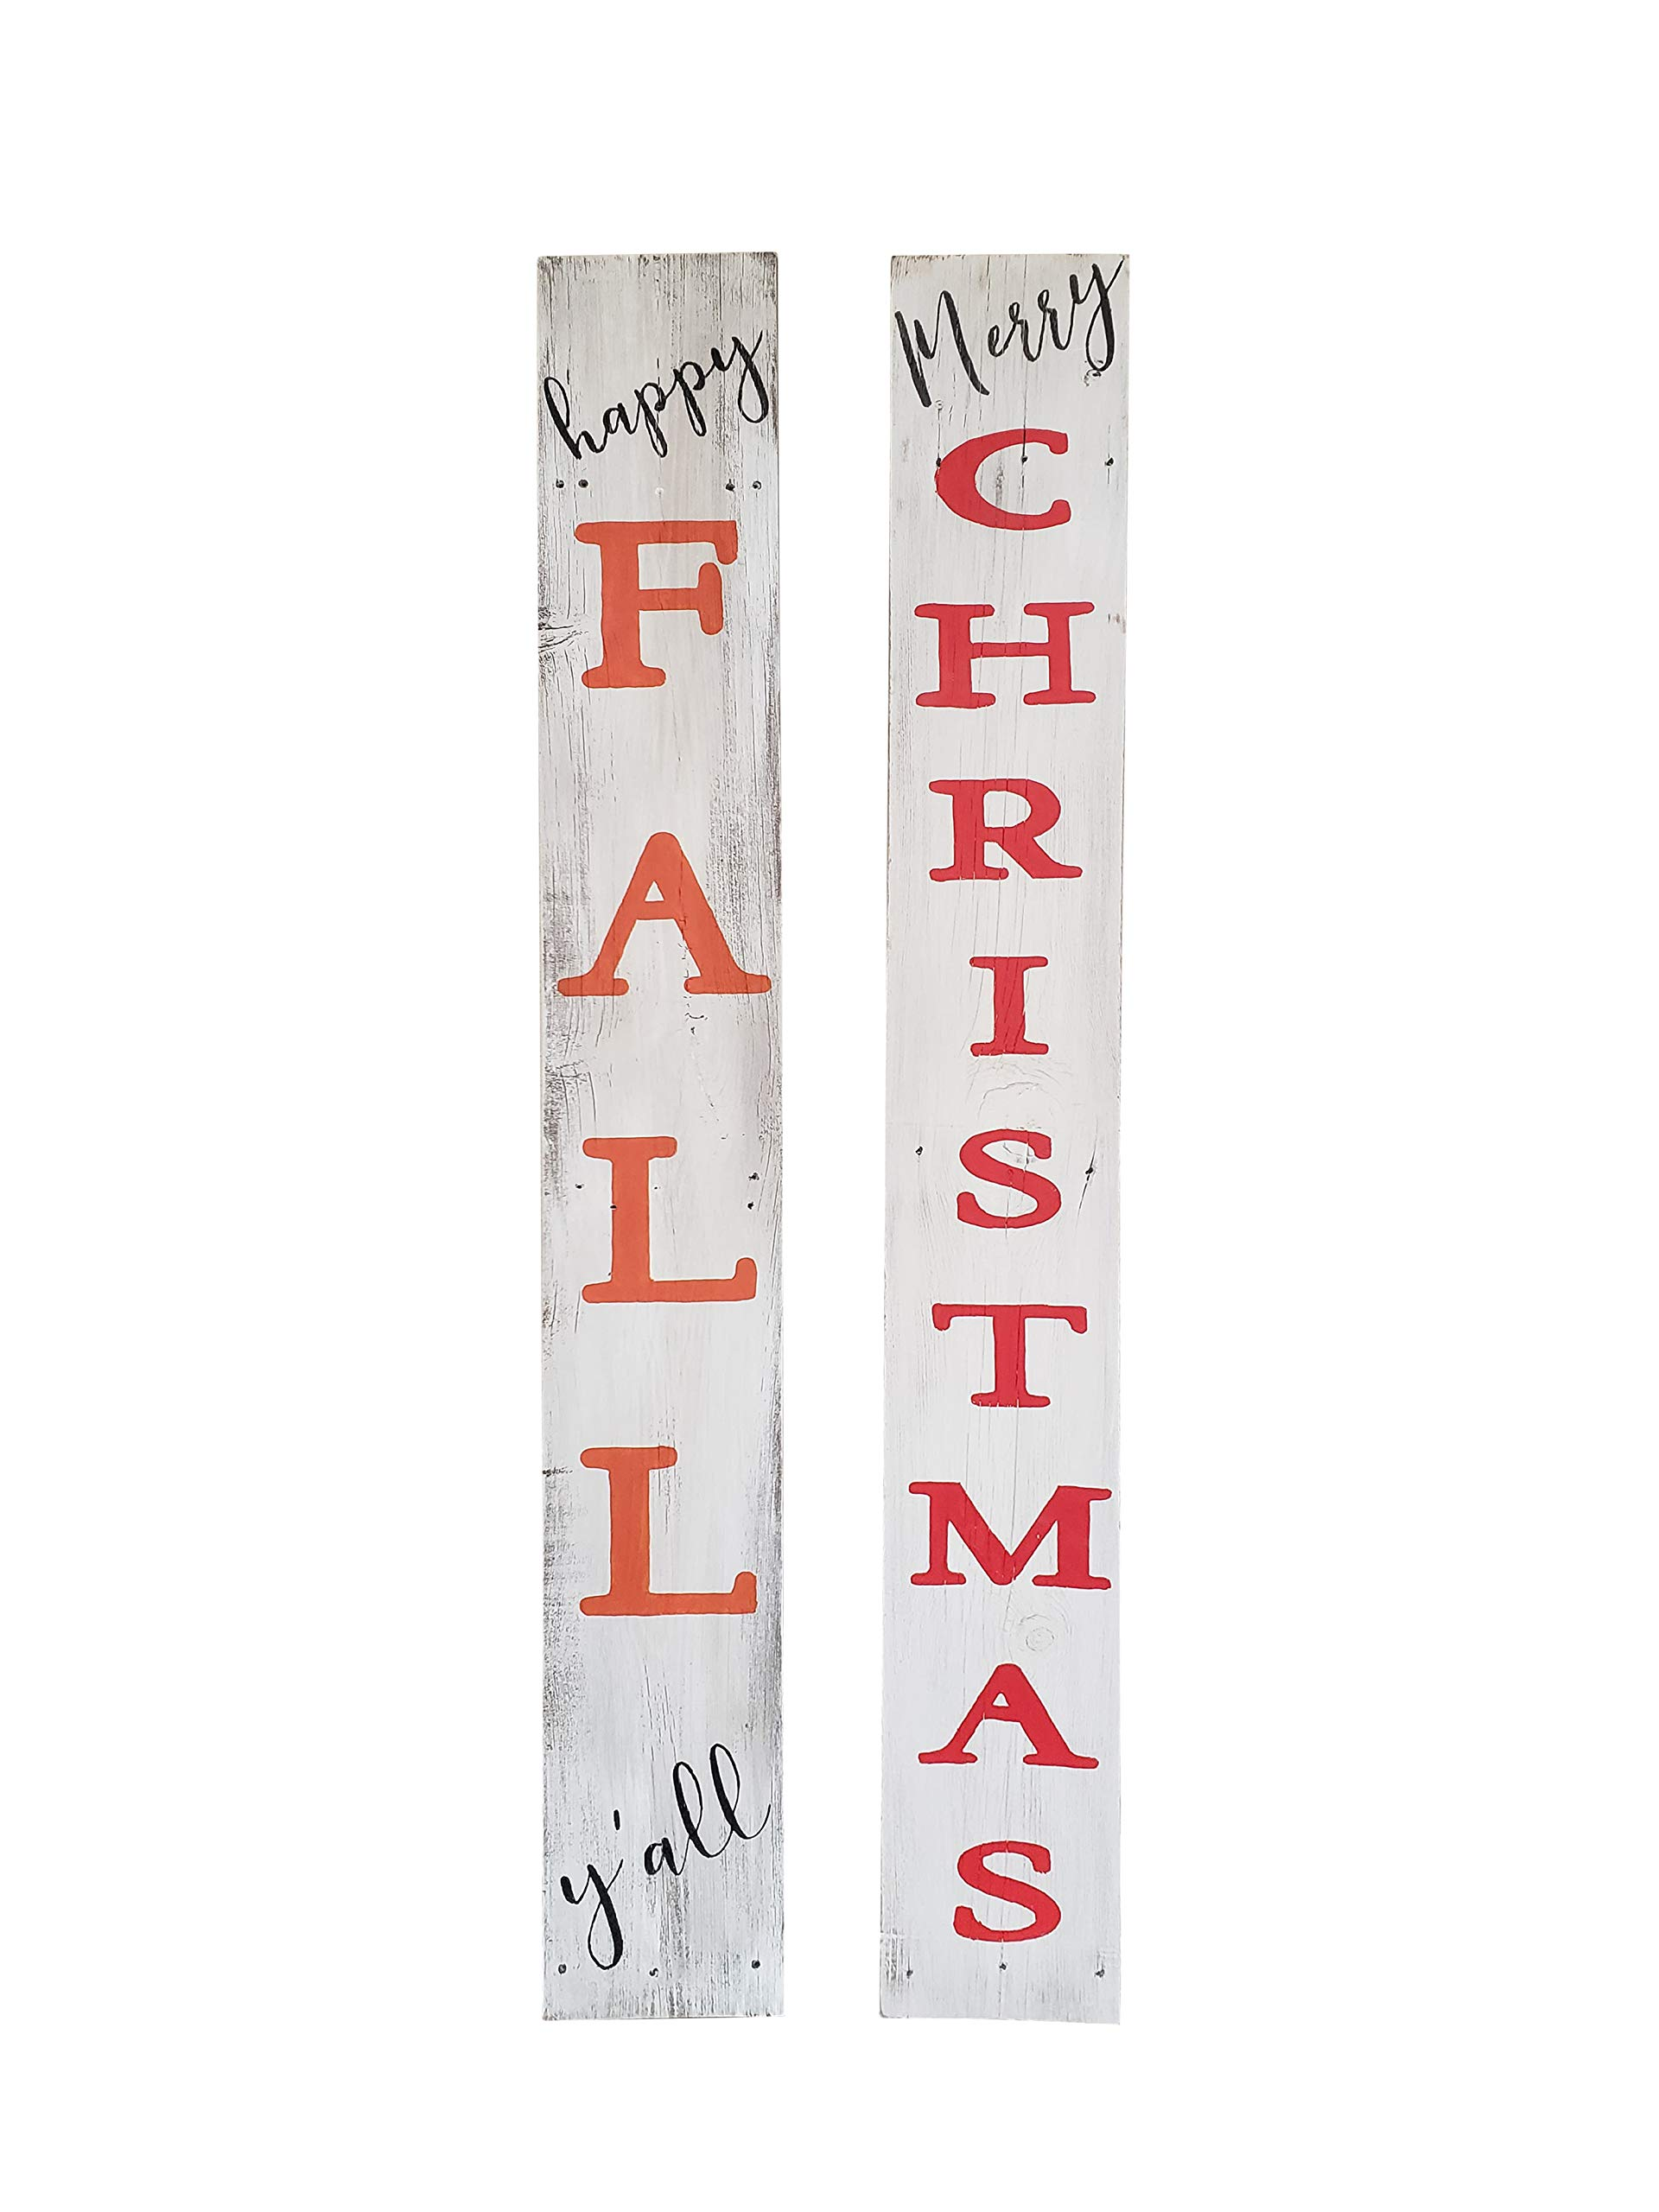 Rockin' Wood Reversible Sign for Fall and Christmas - 5 feet Tall - Perfect Front Porch Sign with Rustic Farmhouse Character-Happy Fall Y'all and Merry Christmas by Rockin' Wood